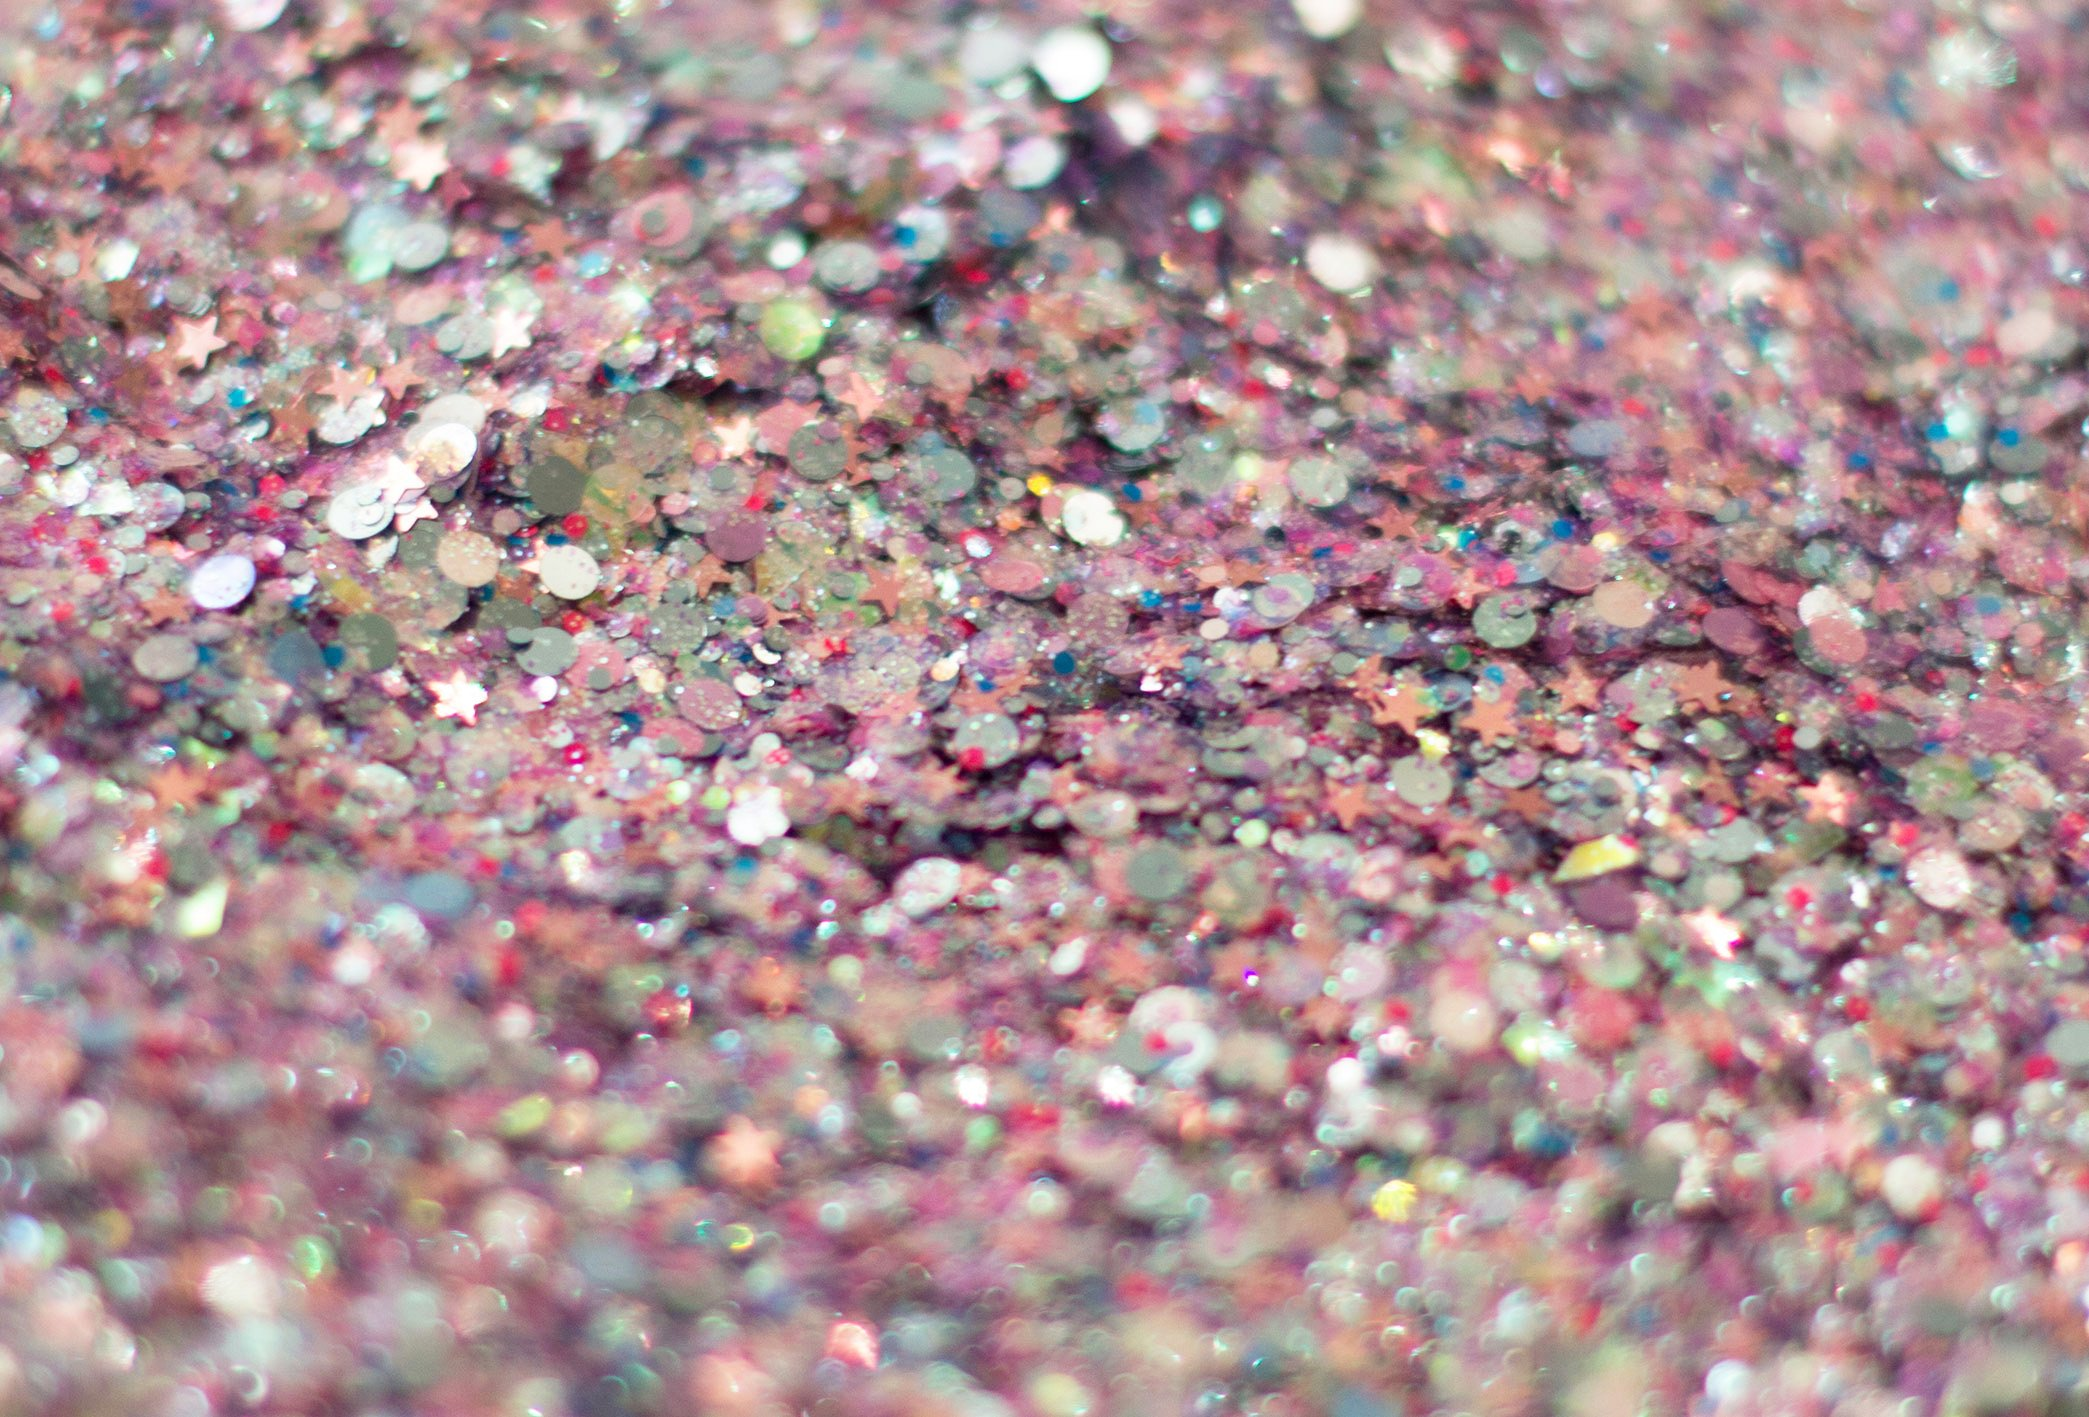 Unicorn Chunky Glitter ✮ Large 30g Jar COSMETIC GLITTER ✮ Festival Face Body Hair Nails by KARIZMA (Image #7)